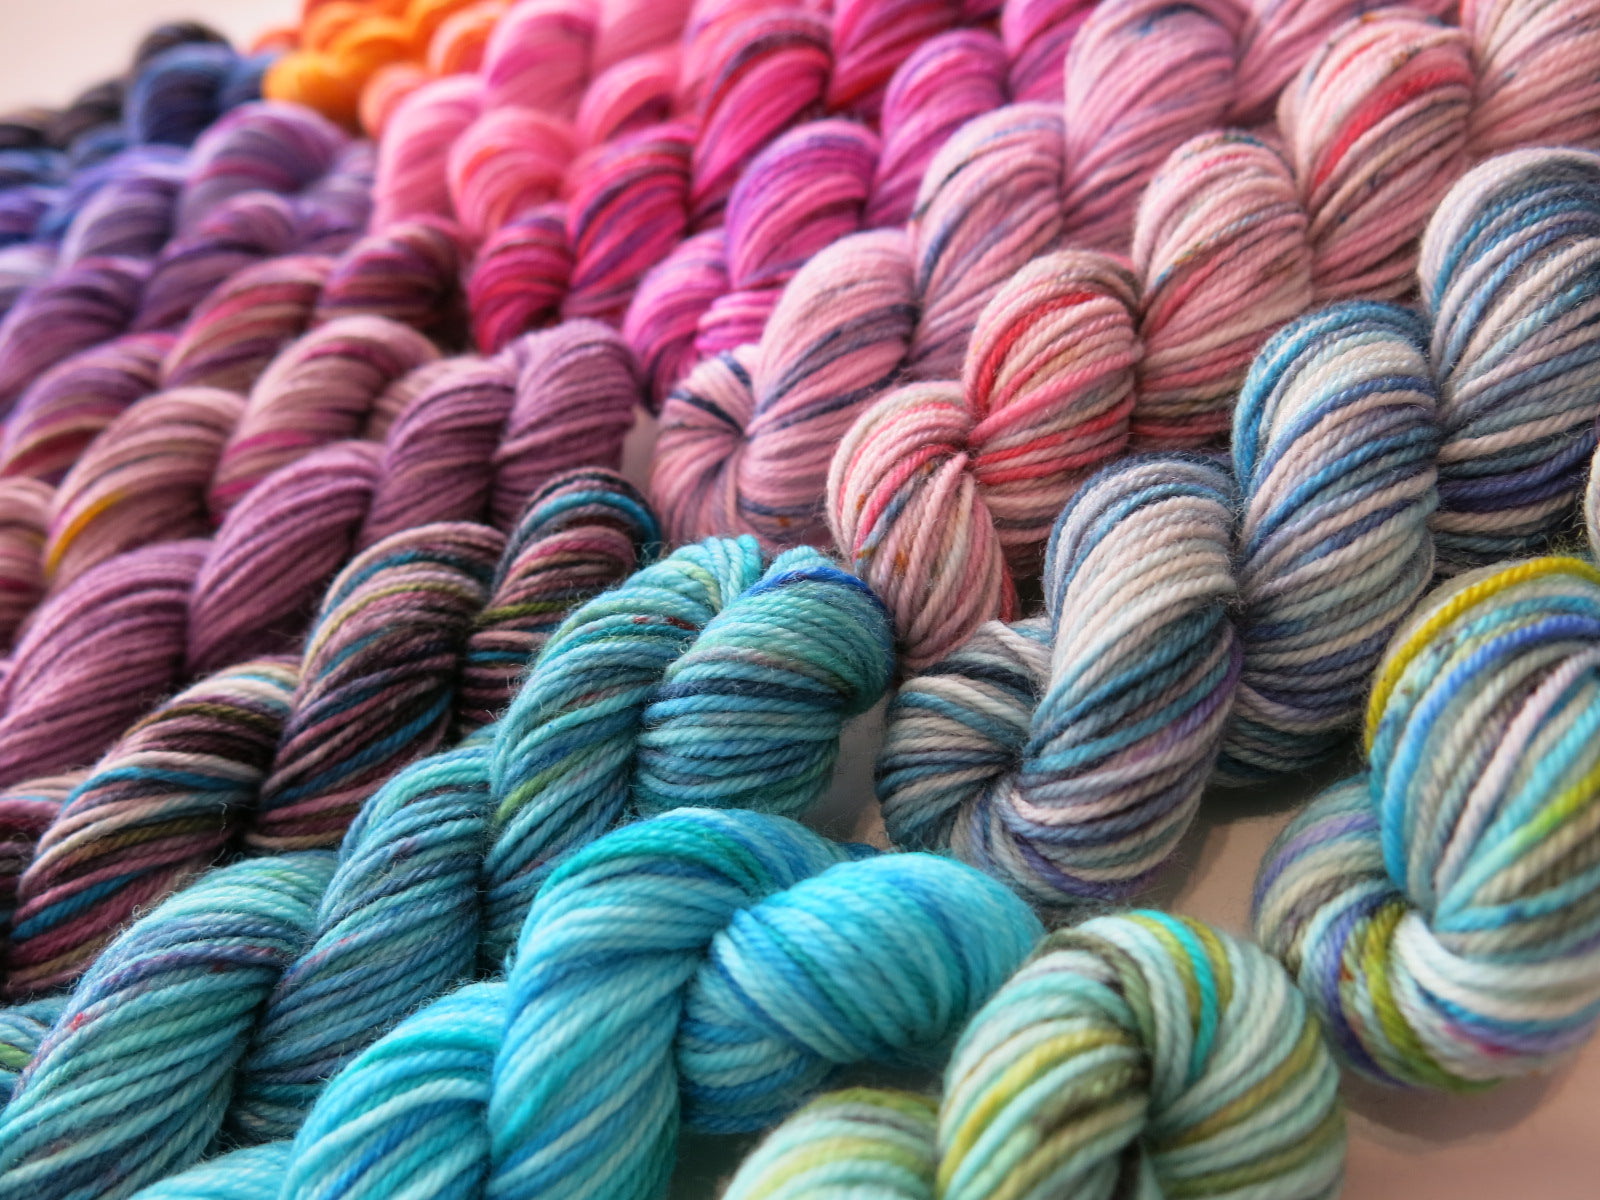 24 mini skein set in indie dyed sock yarn with speckles